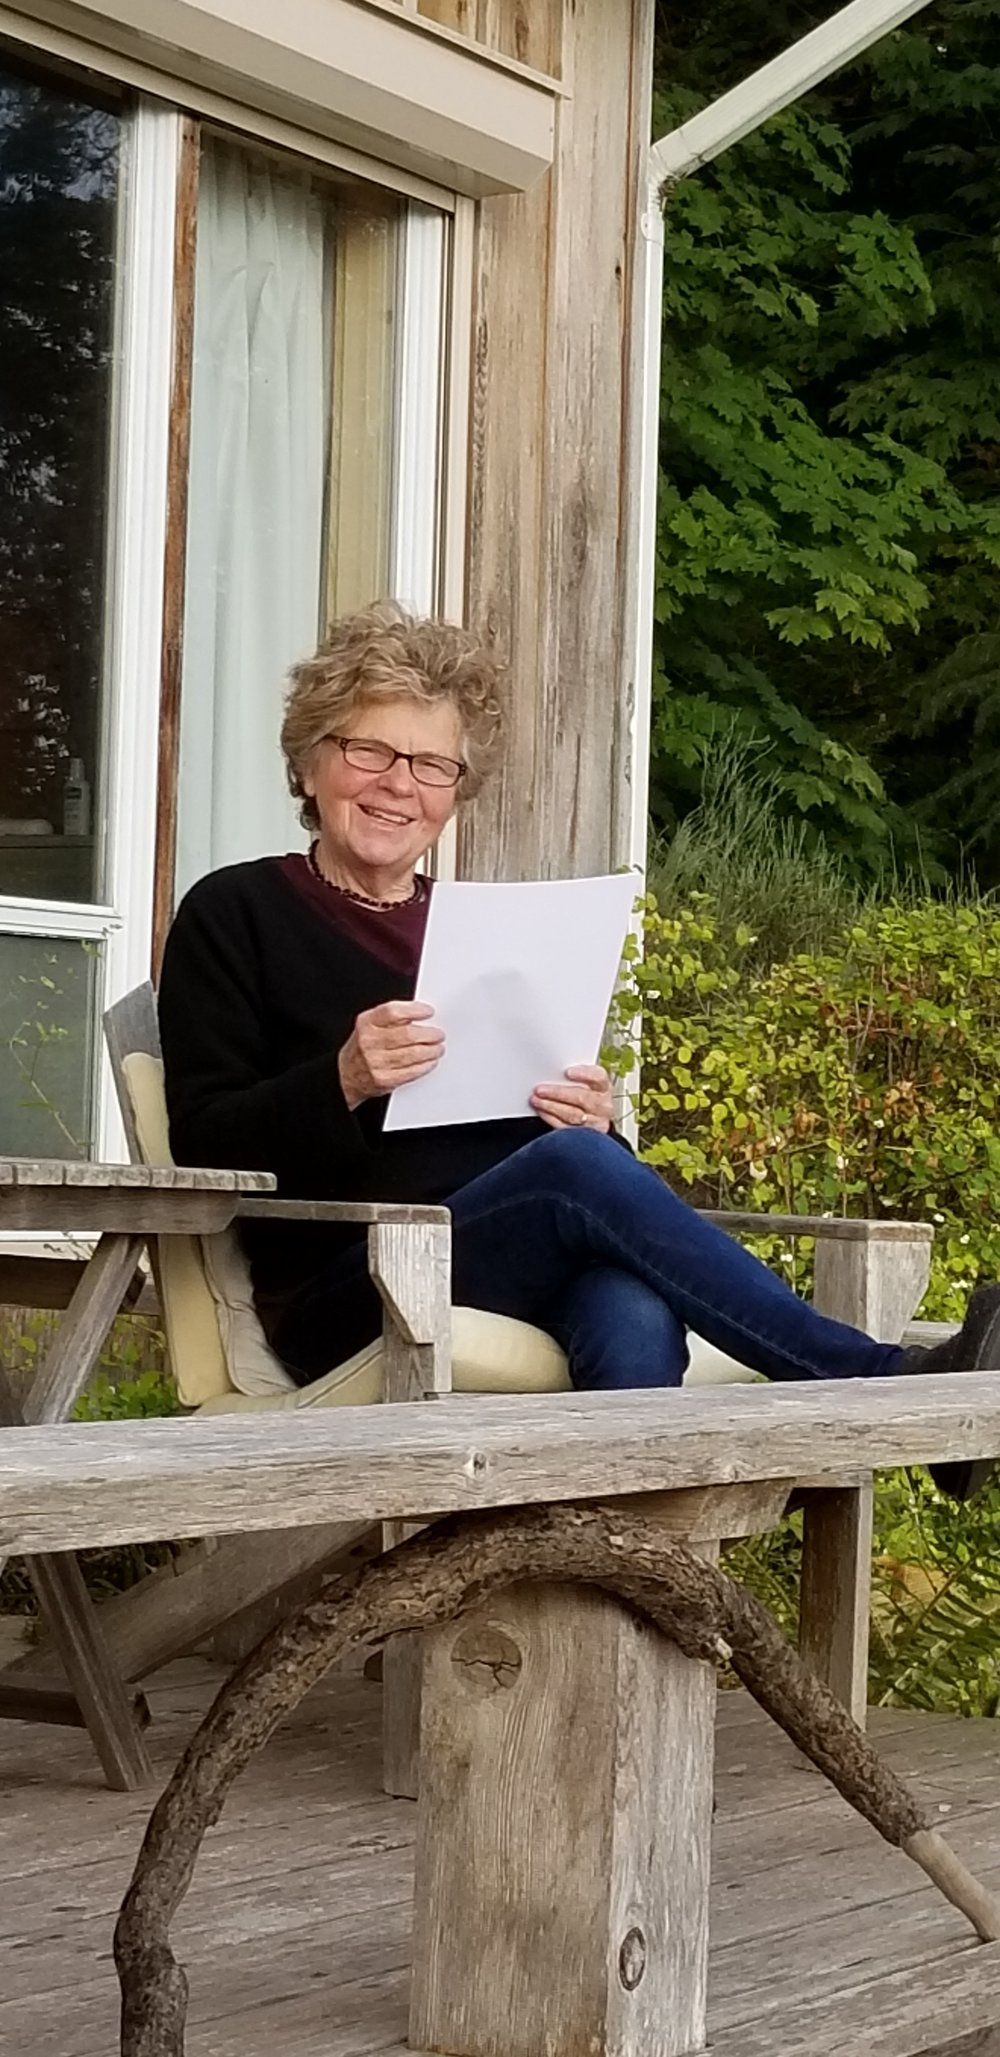 Arleen reading a local writer's submission on the porch.